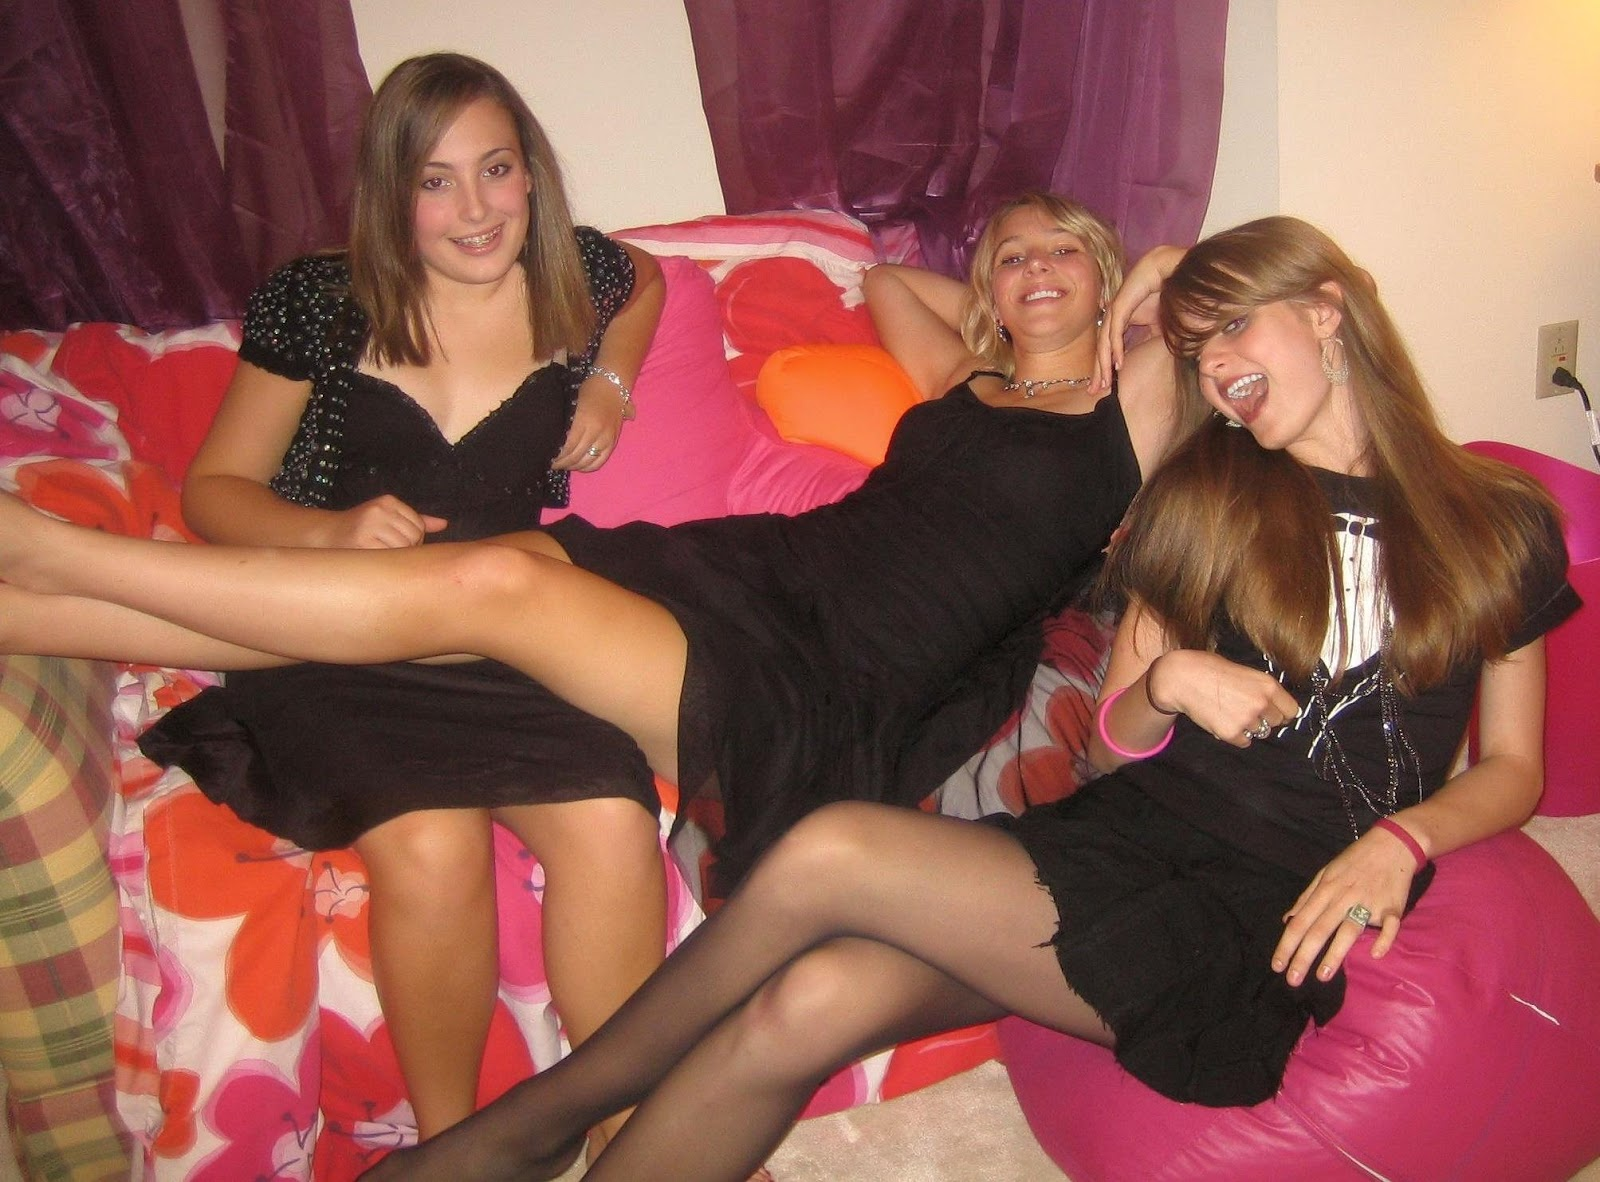 Party look skirt dress nylons tights heels